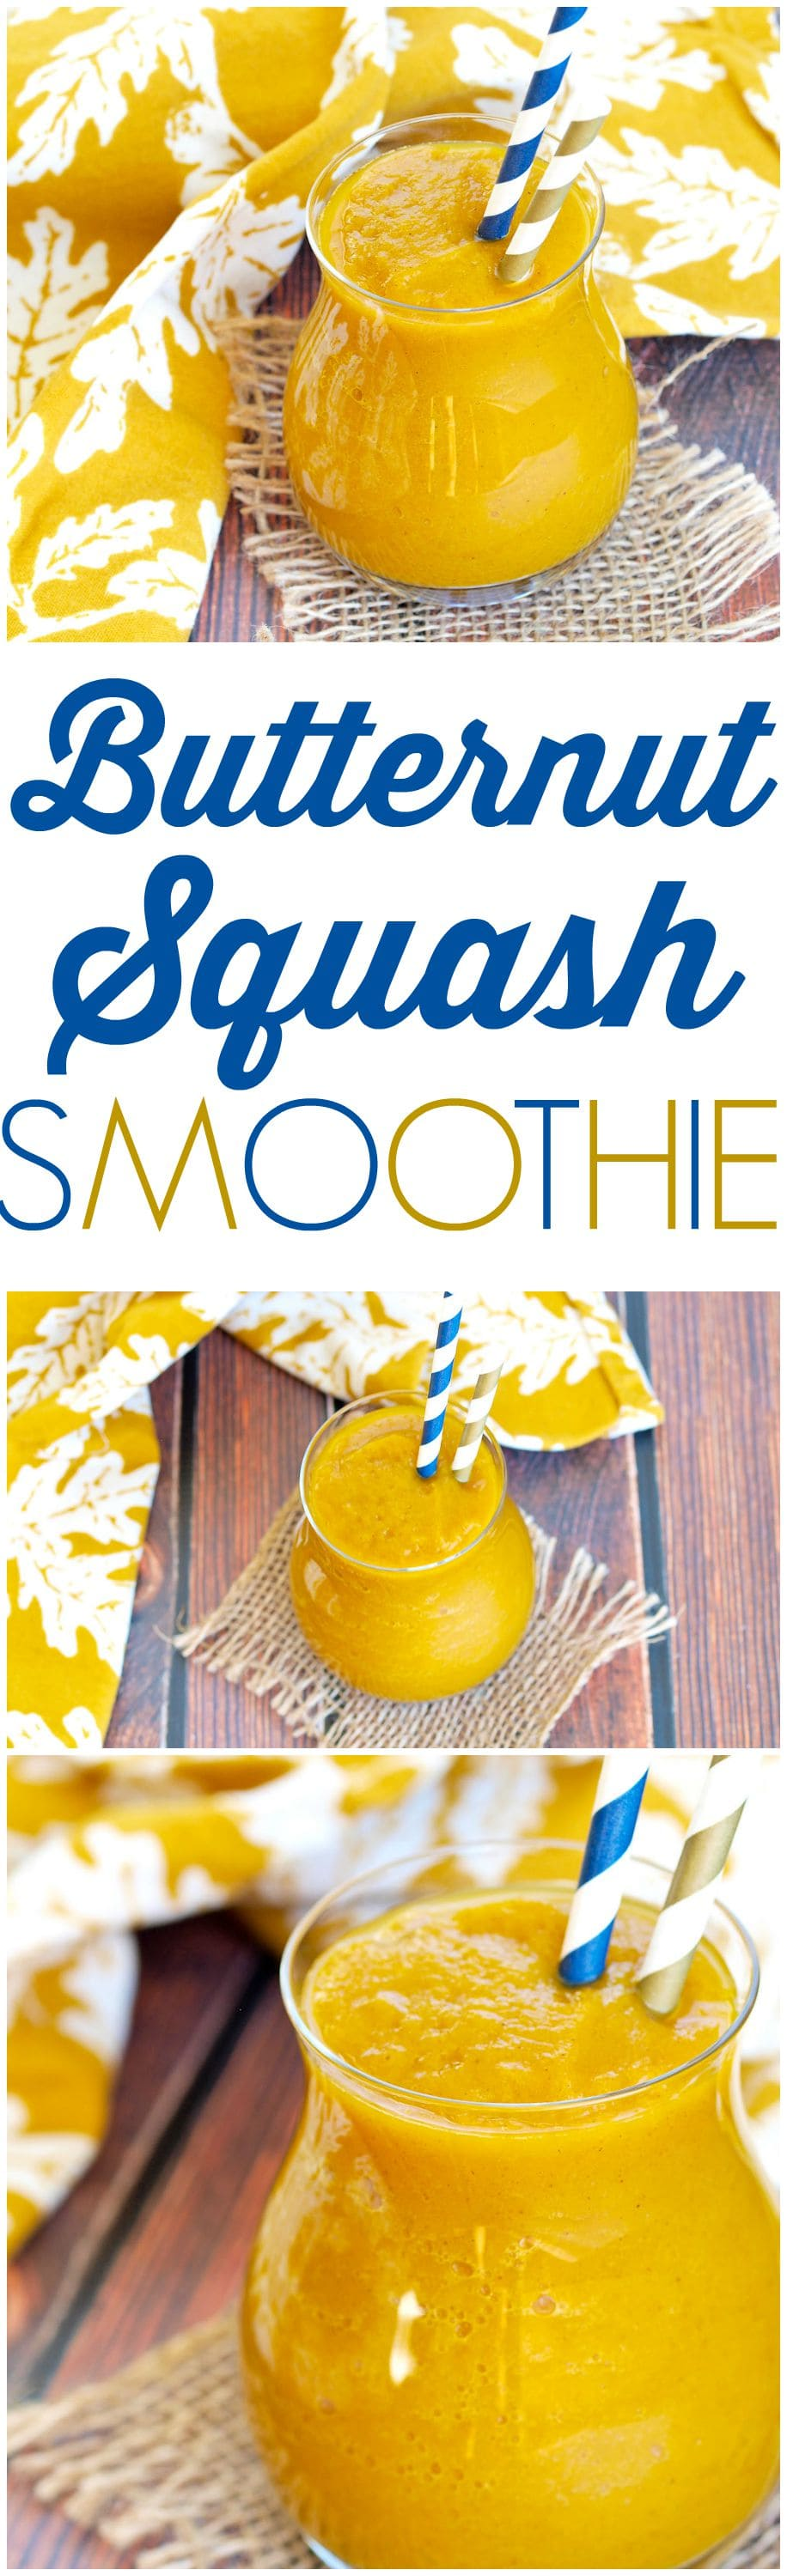 DRINK your vegetables with this Butternut Squash Smoothie recipe! There is a delicious, healthy smoothie that is filled with fall flavors! Perfectly spiced, and sweetened with dates and maple syrup. So good!!